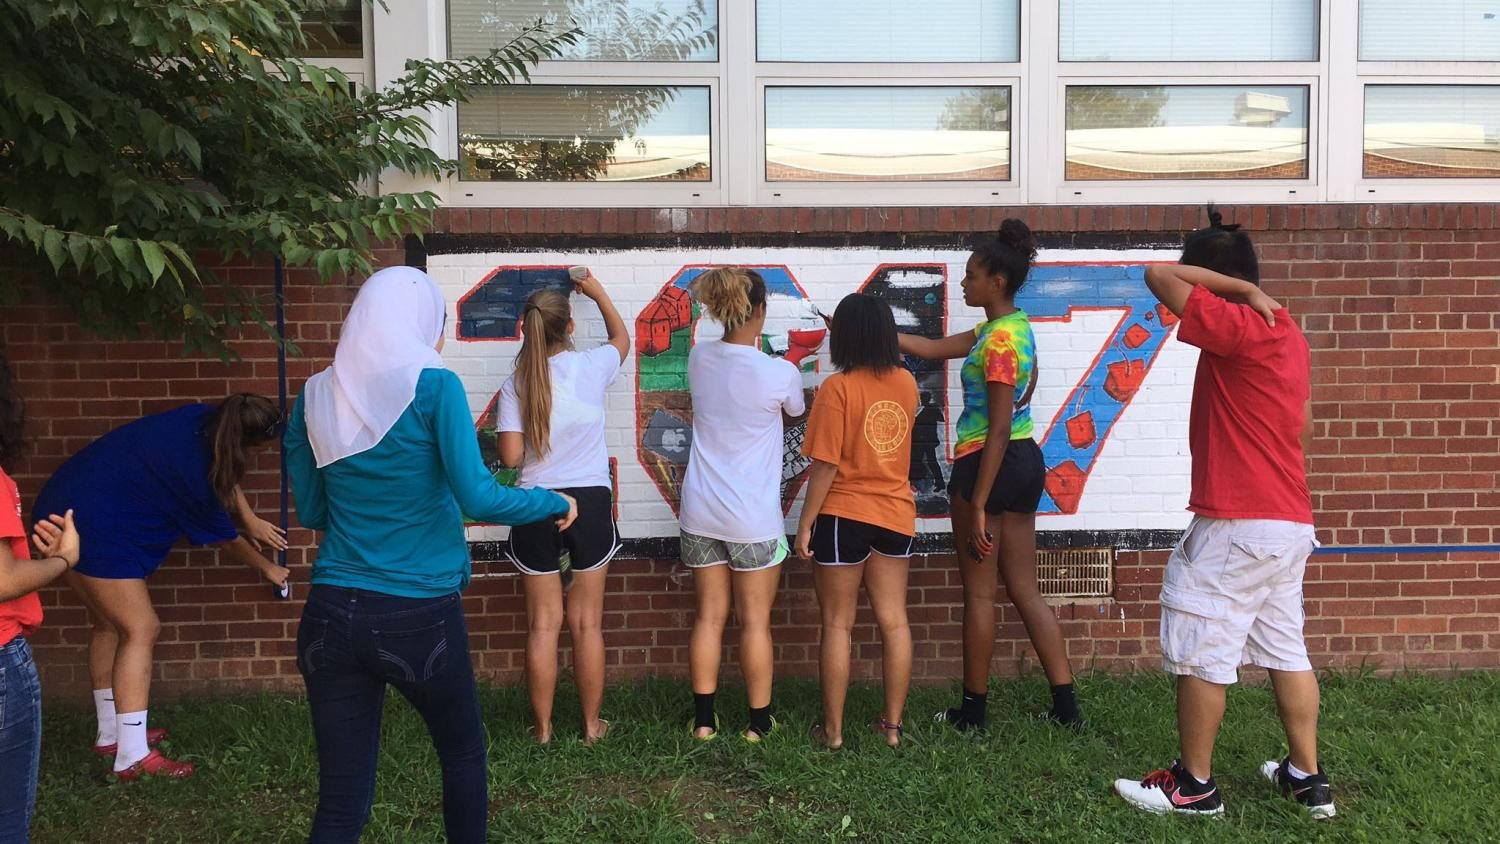 RIsing+seniors+gather+to+paint+over+last+year%27s+2017+painting+in+the+courtyard.+